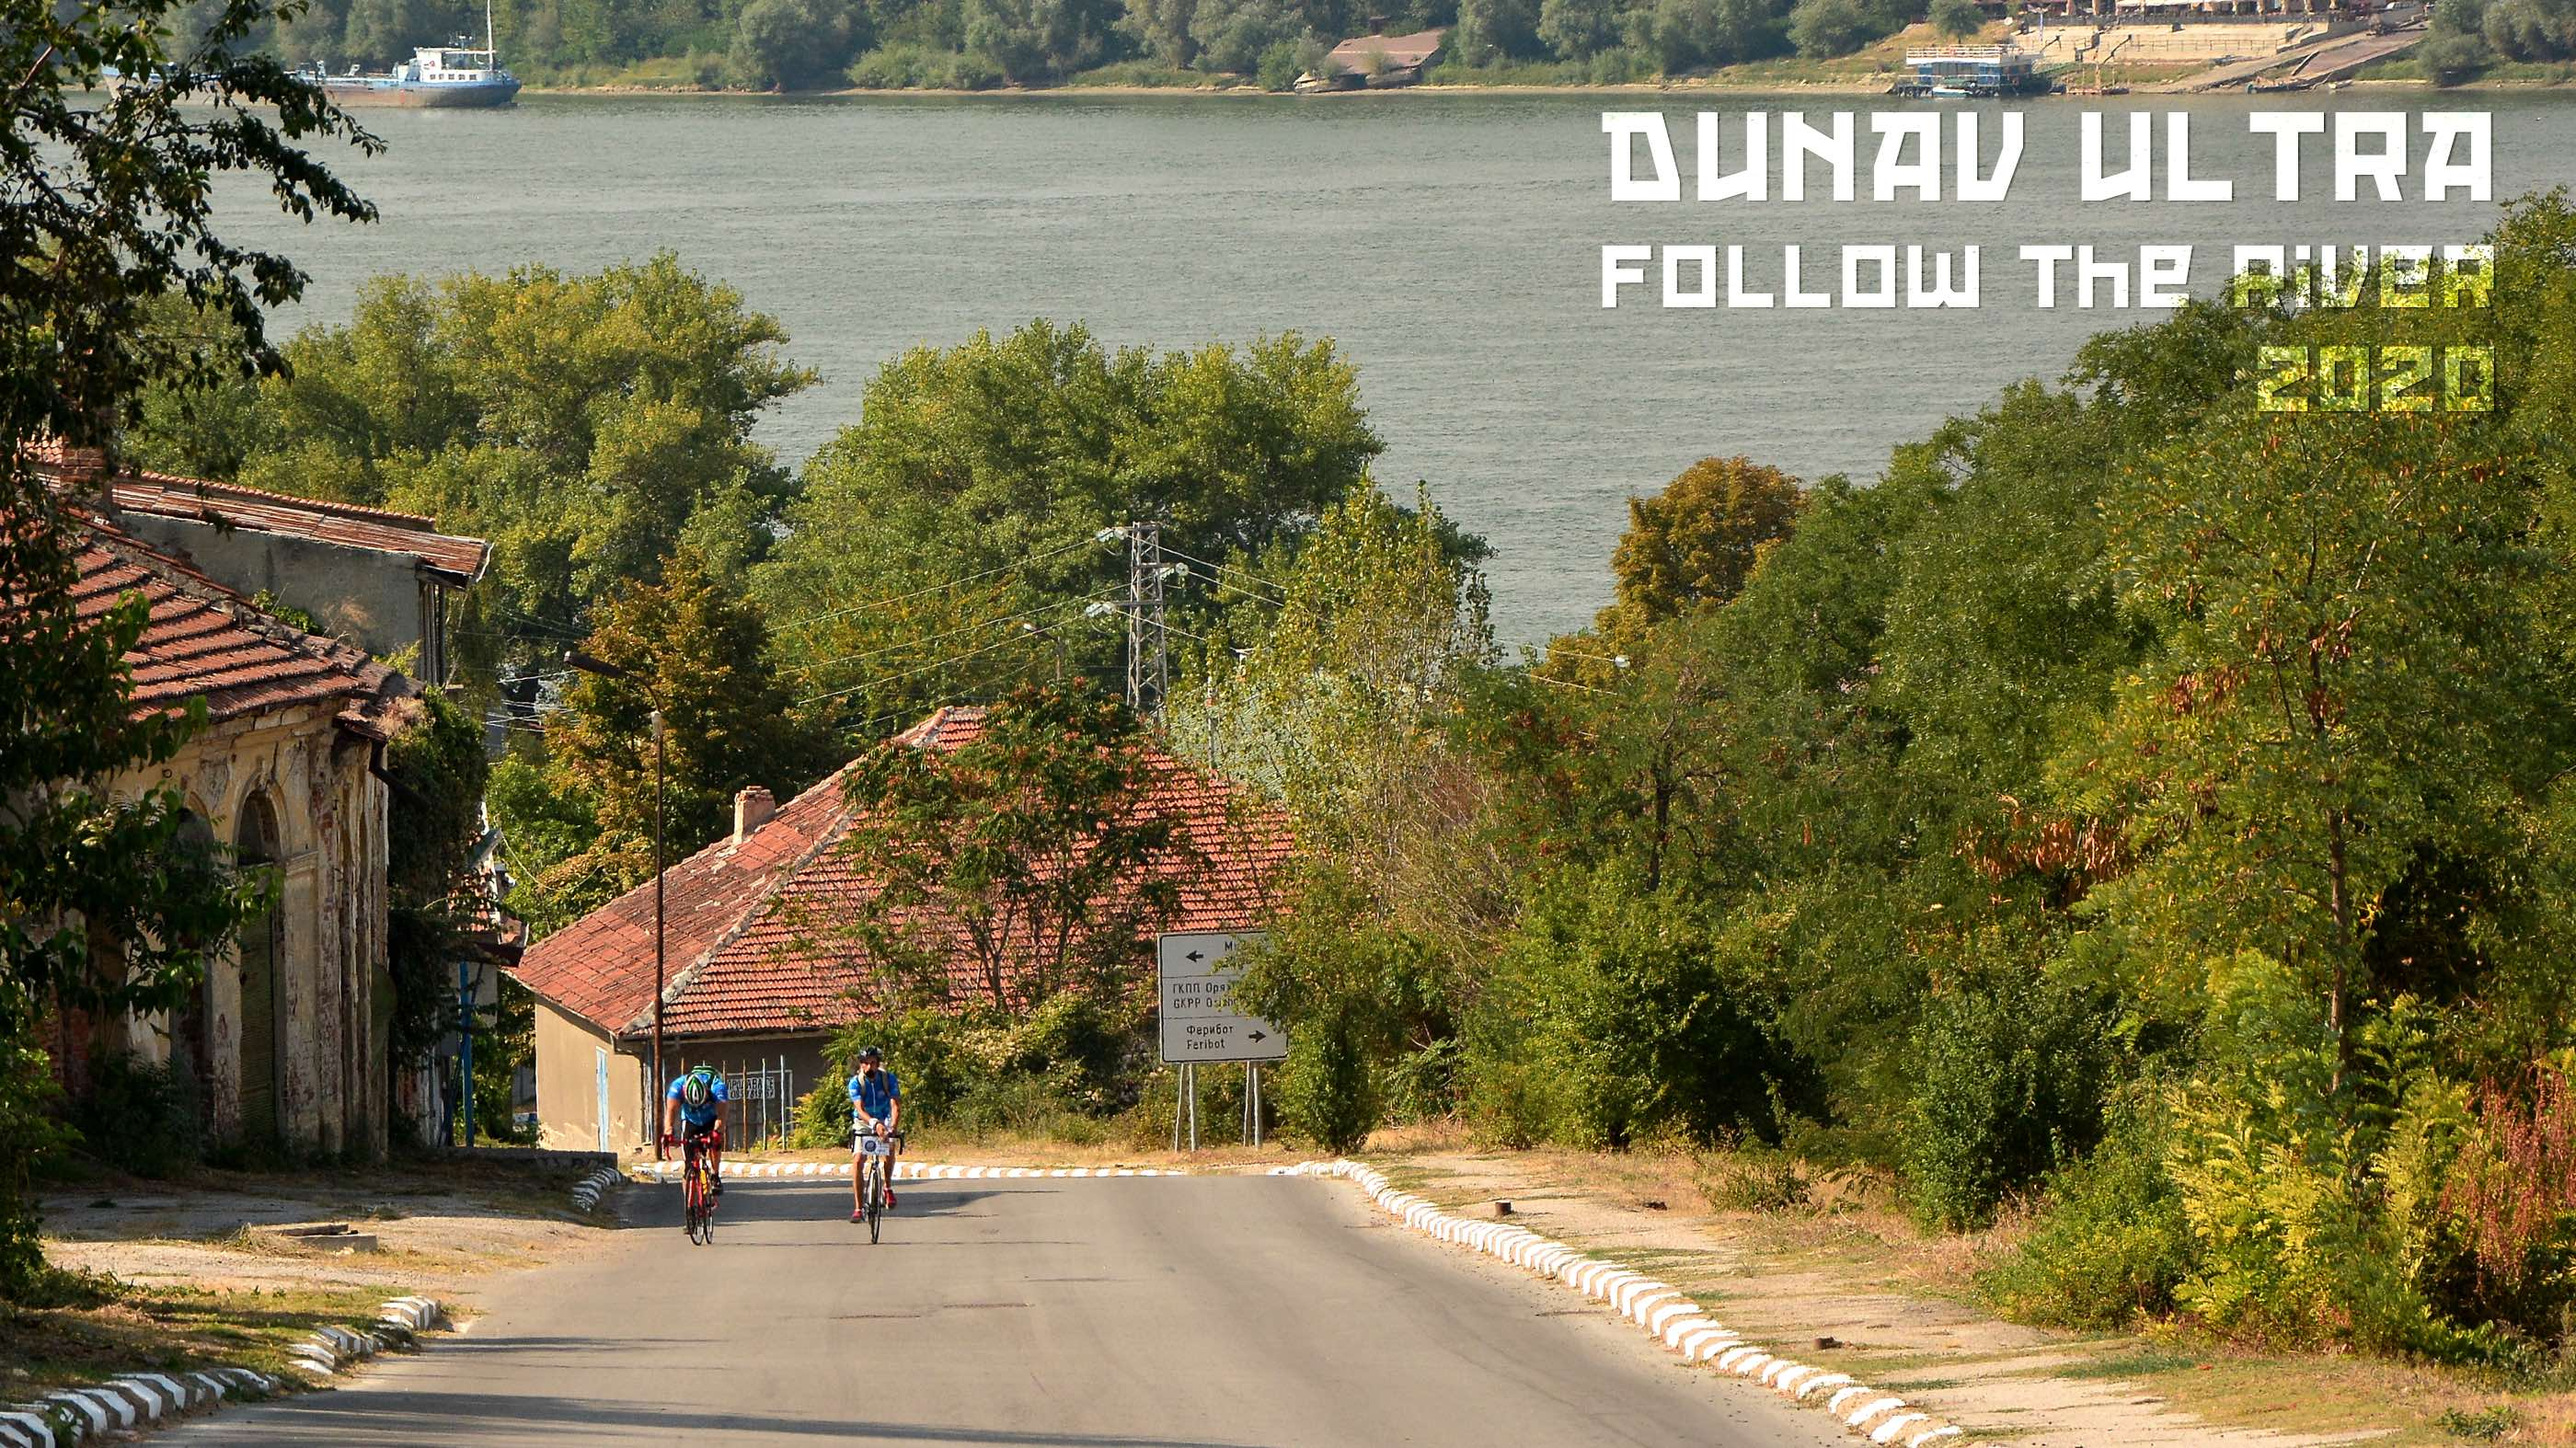 Dunav Ultra 2020 – a record interest in the annual adventure